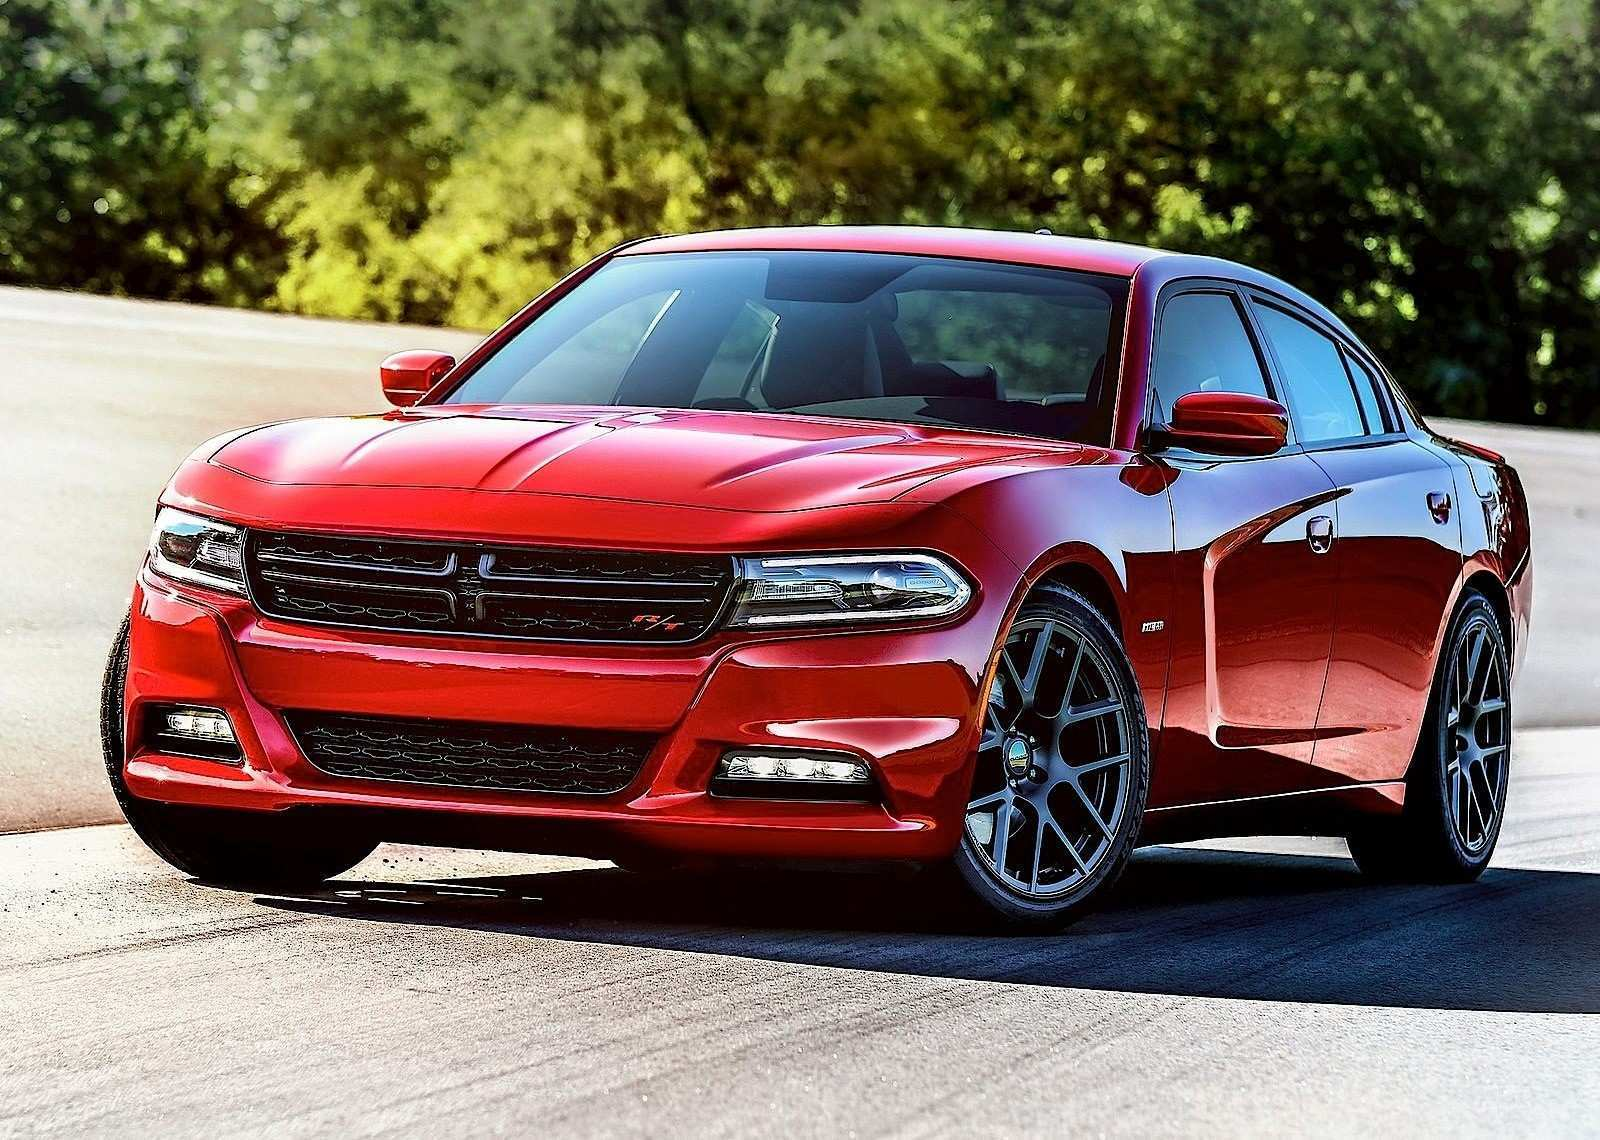 37 All New 2020 Dodge Demon New Review by 2020 Dodge Demon